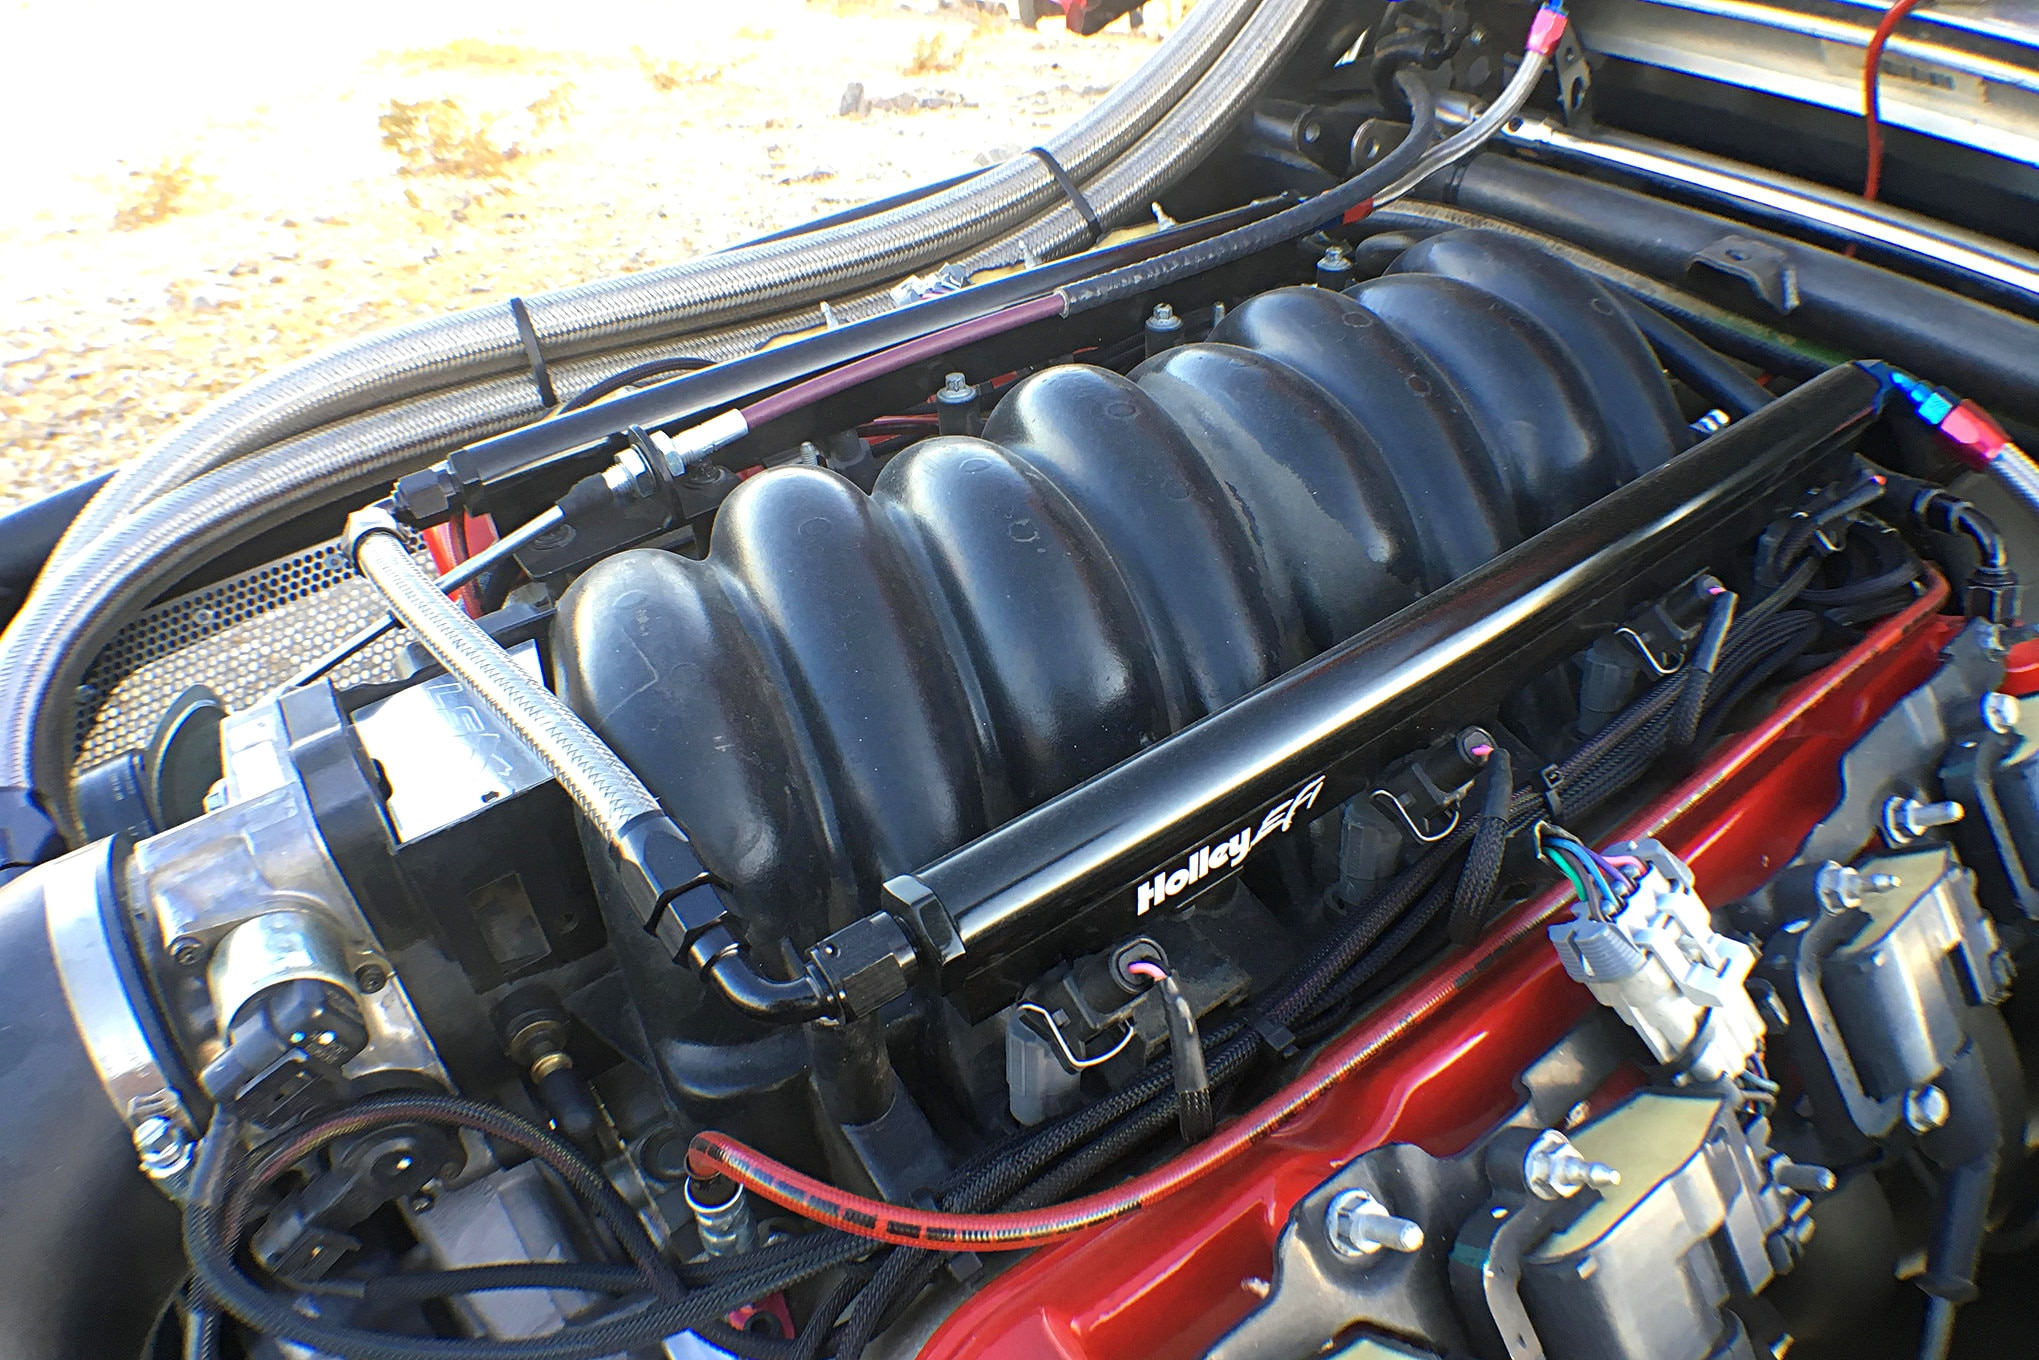 Putting out 500 hp, the LS1 features a Holley EFI system and FAST fuel system, a K&N air filter, and various internal upgrades.